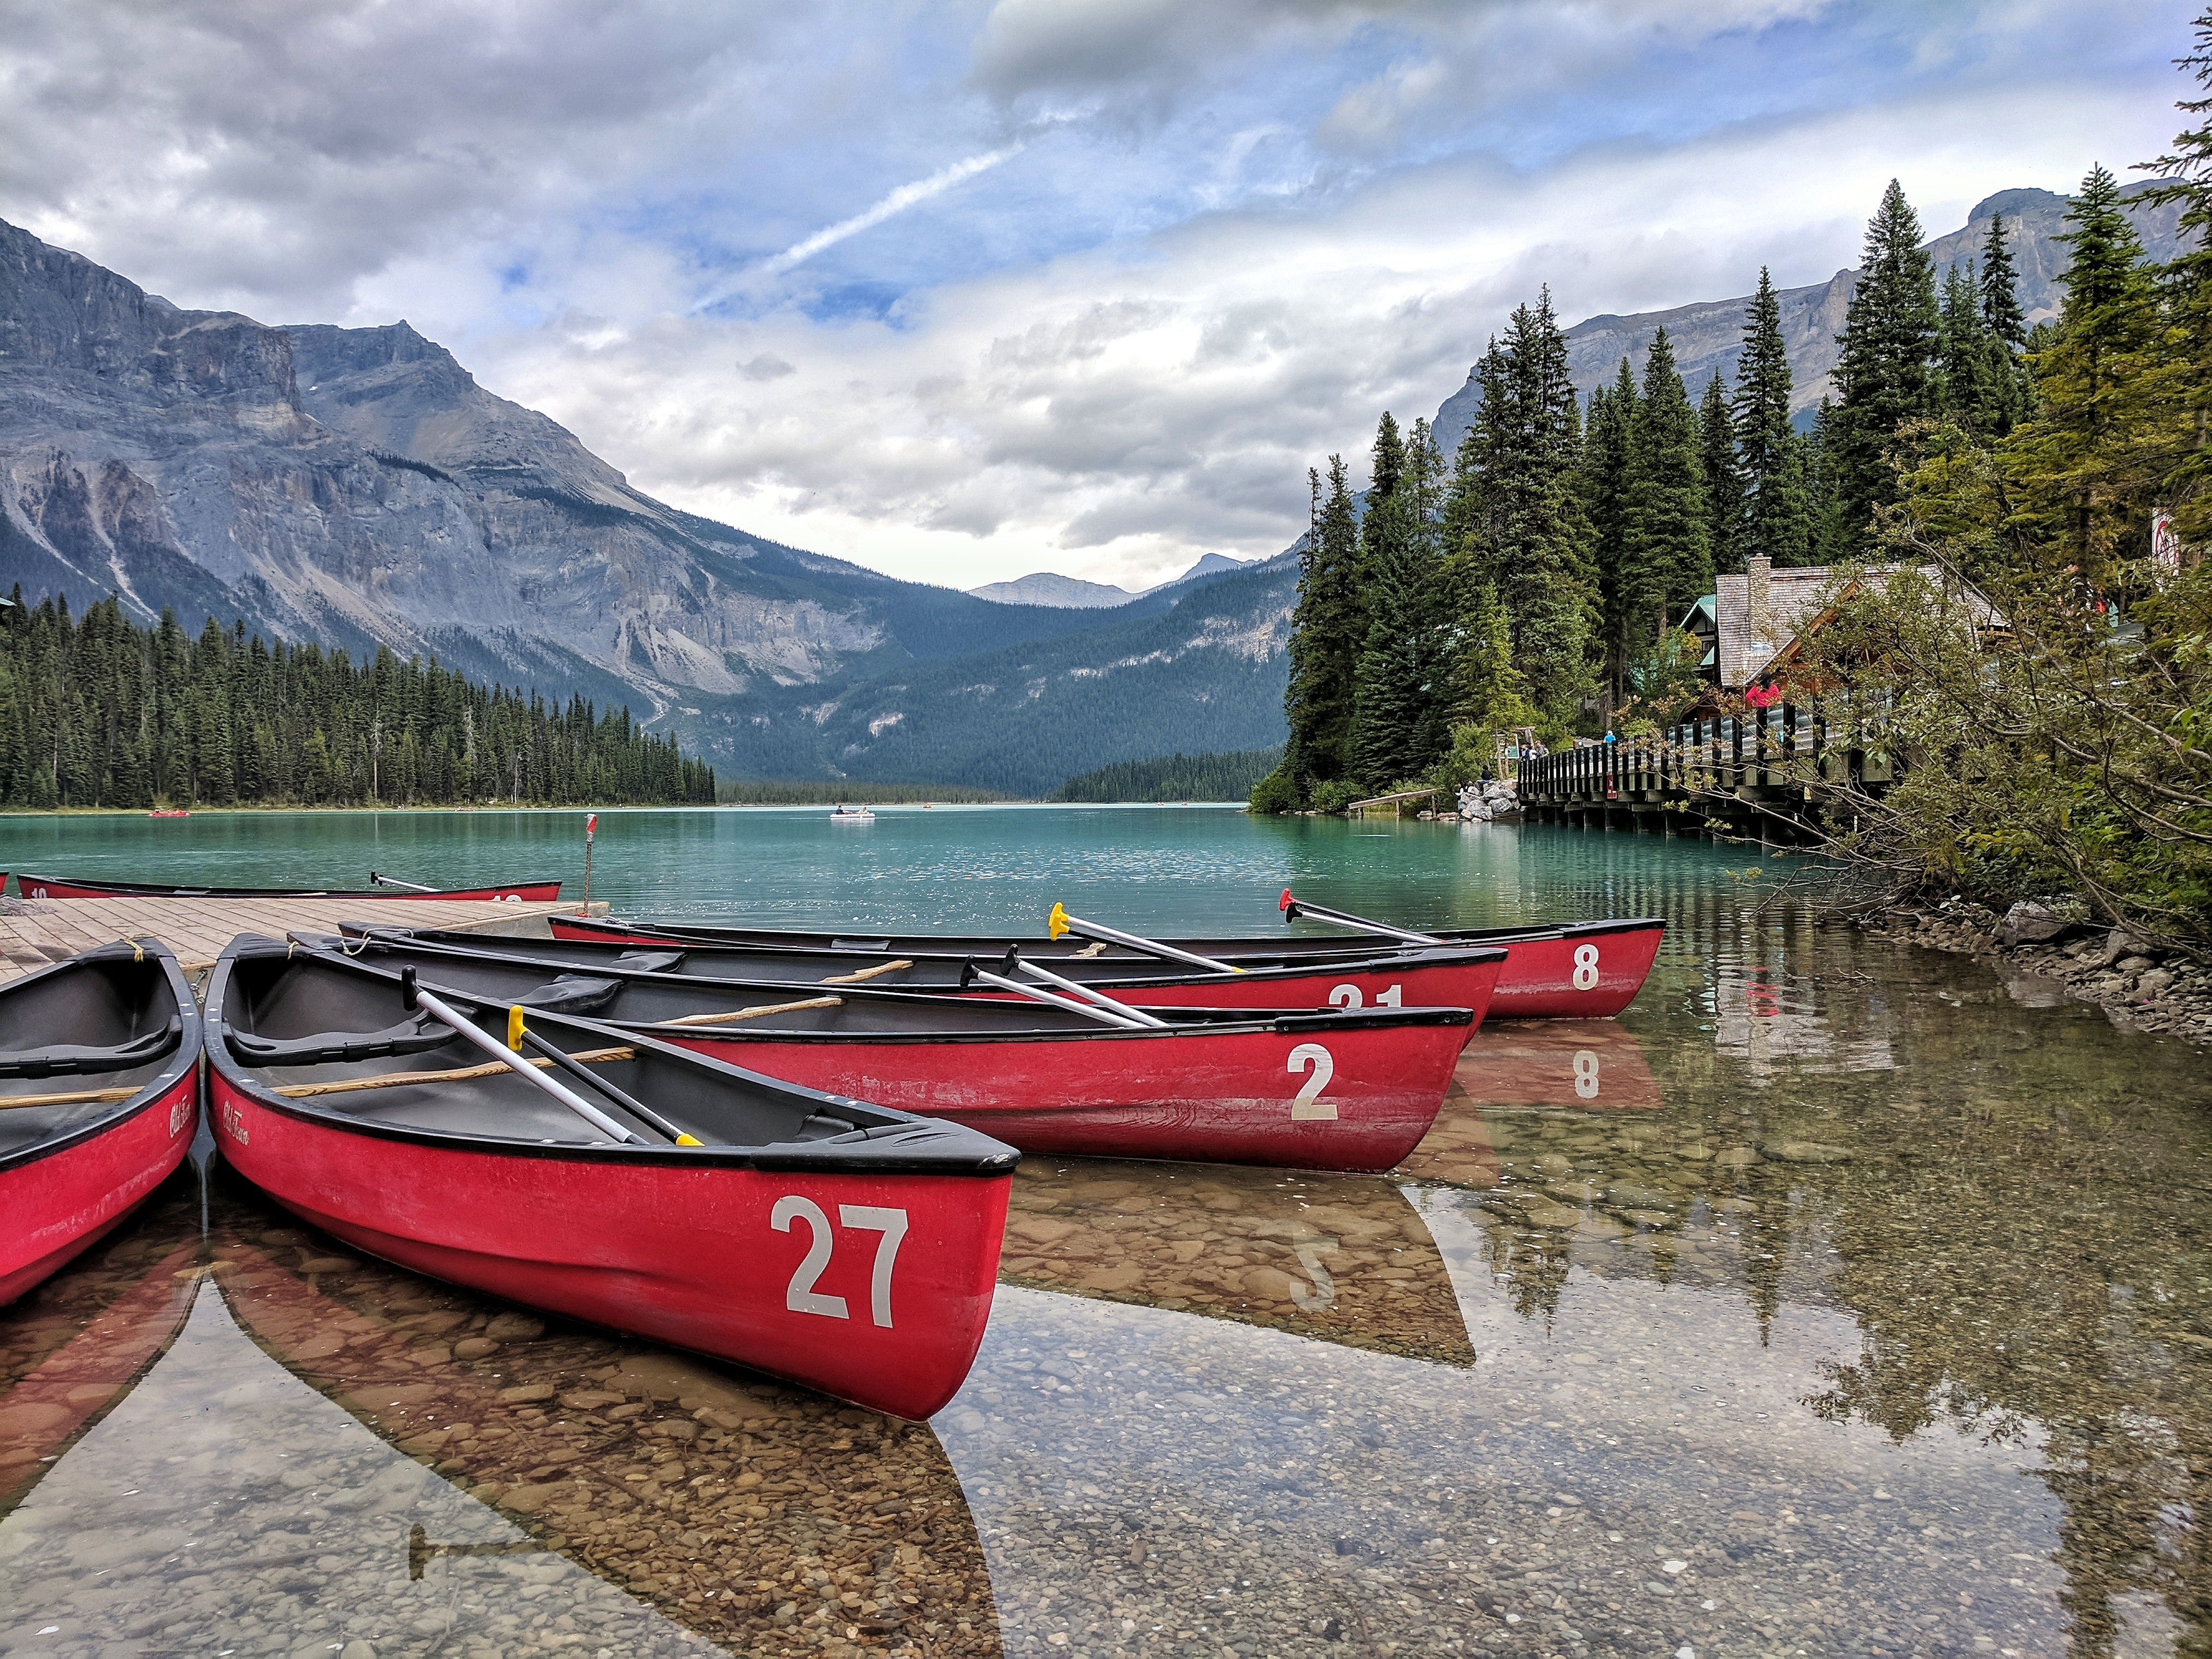 four red canoes on body of water